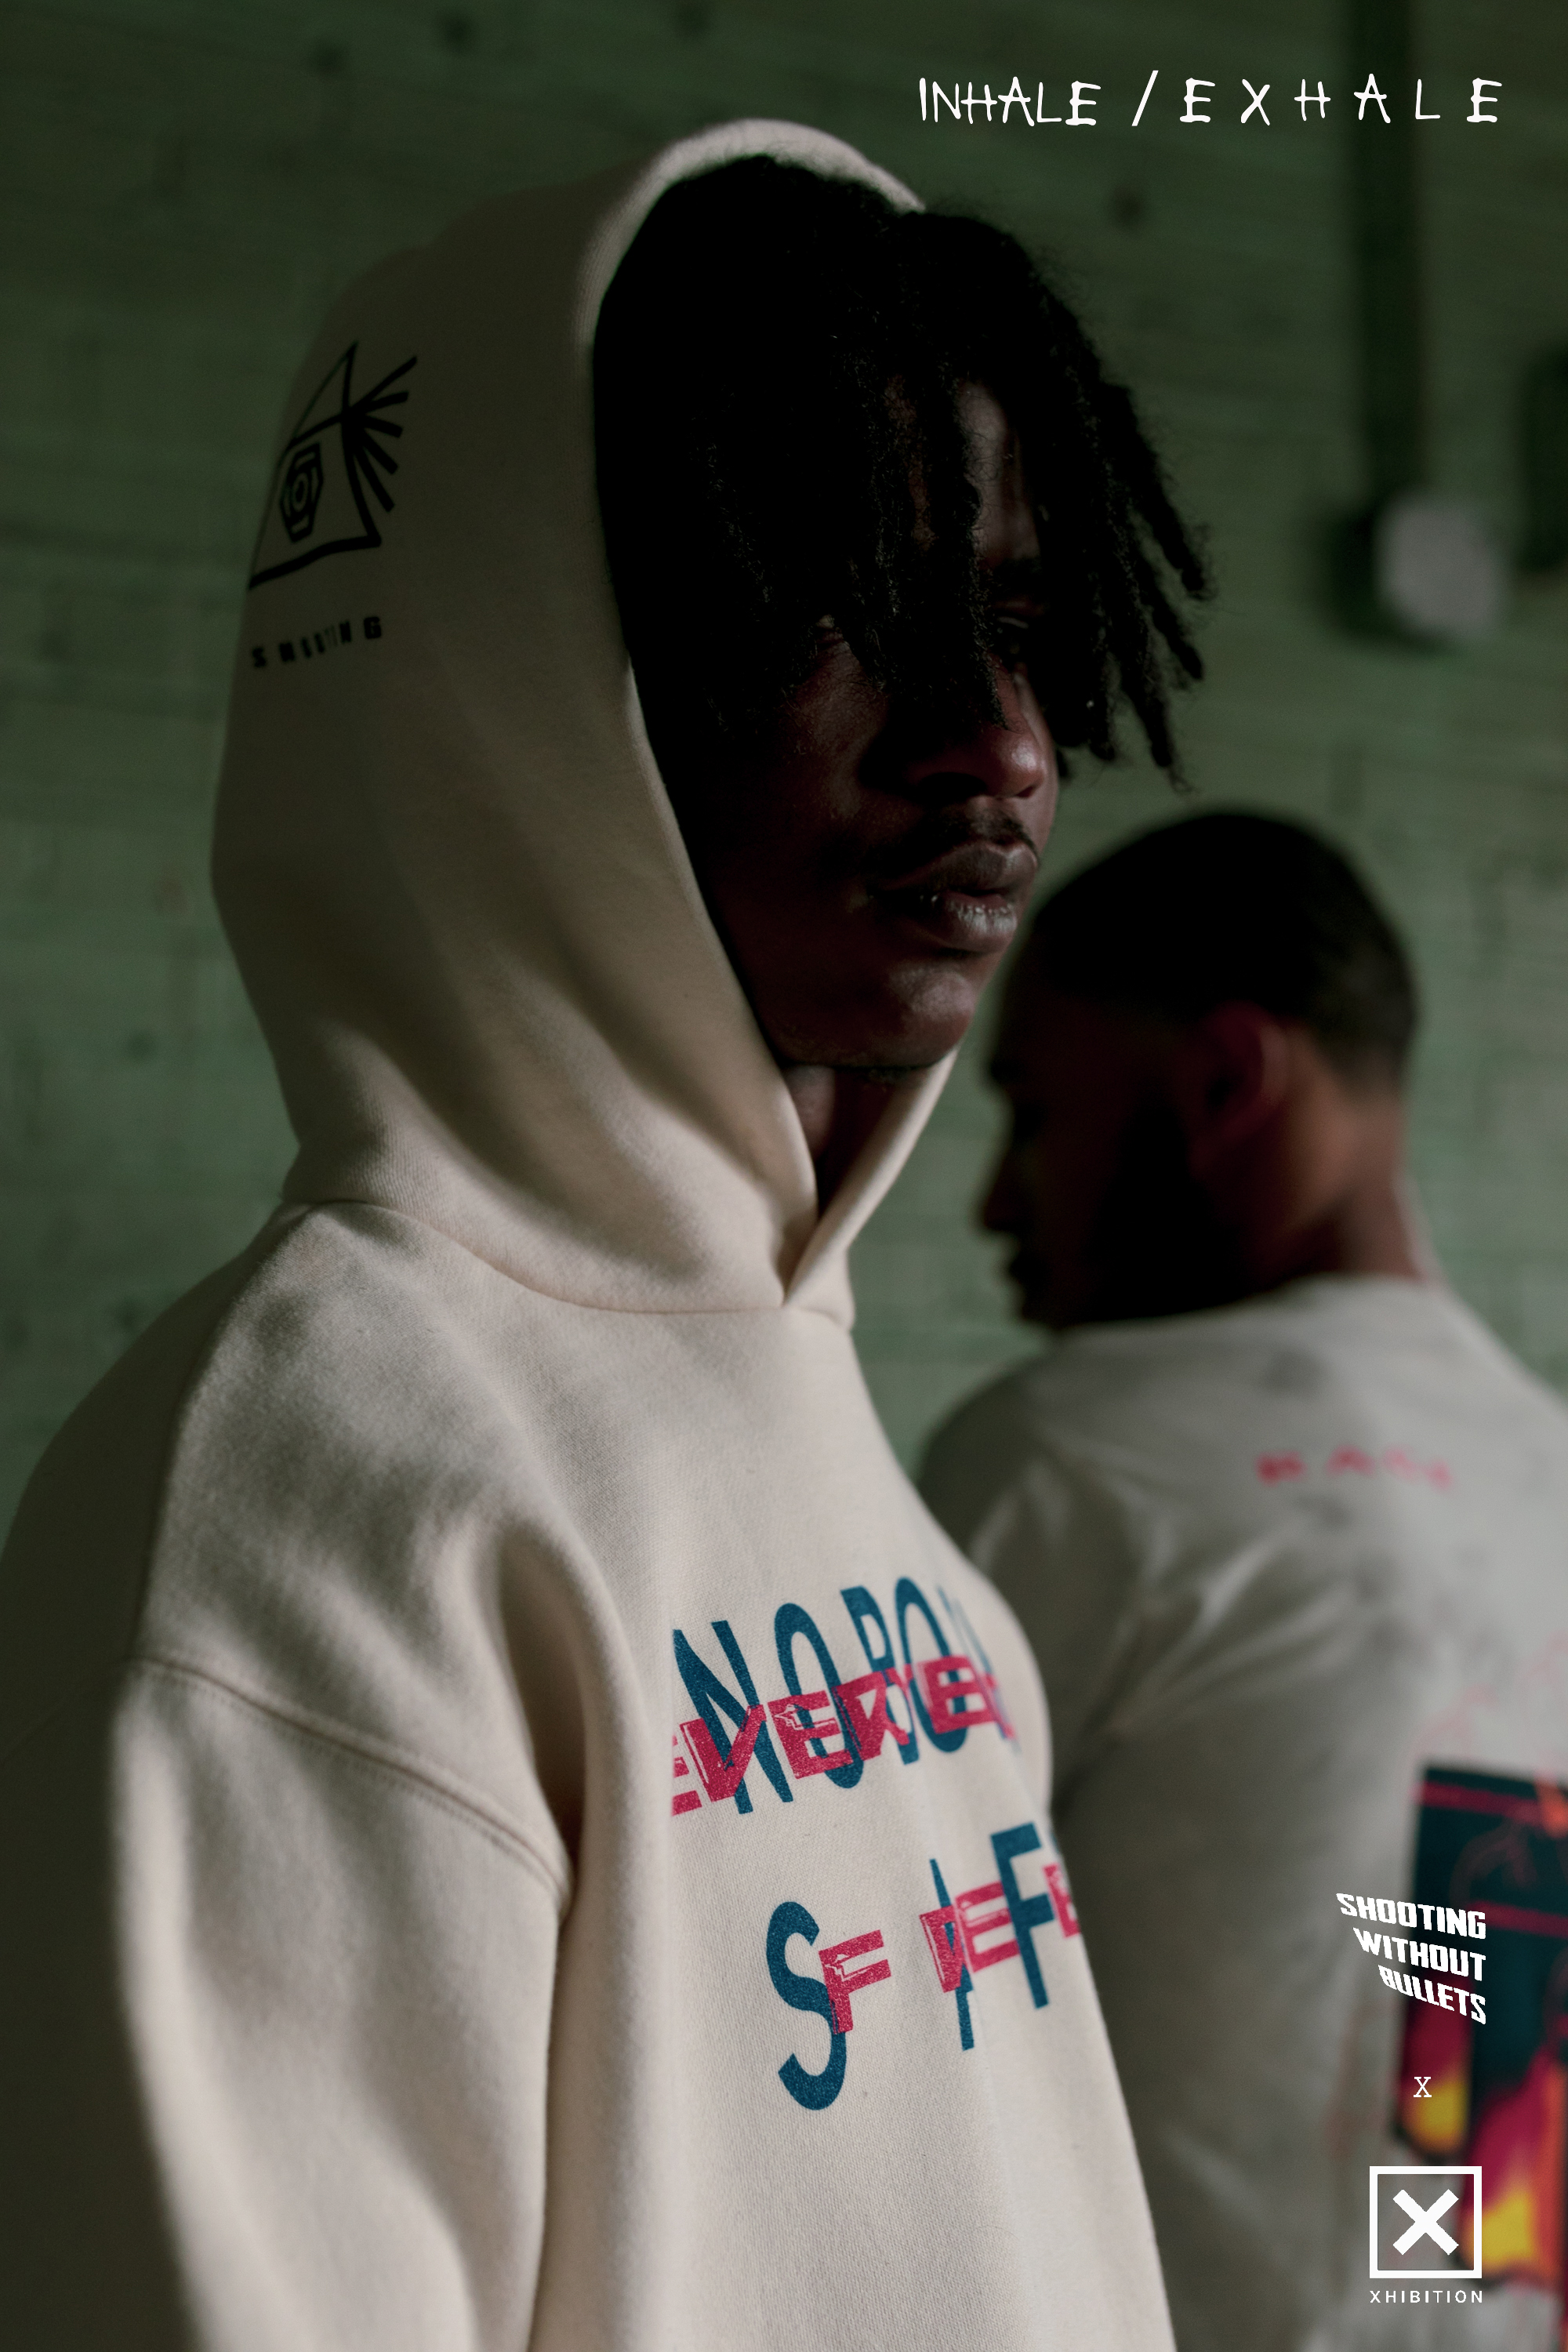 Campaign image from SWOB x Xhibition capsule collection